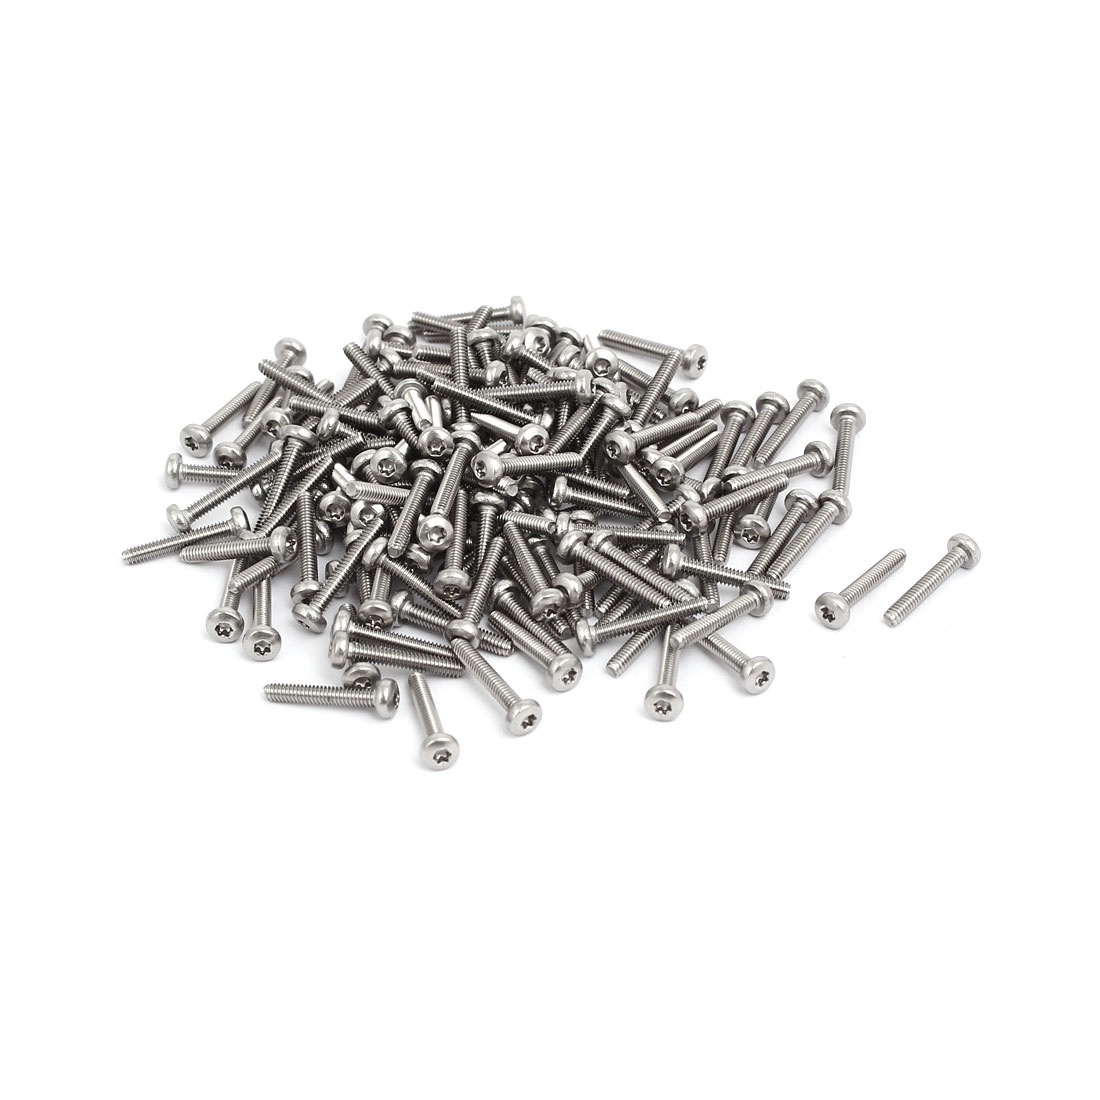 M2x12mm 304 Stainless Steel Button Head Torx Screws Bolts T6 Drive 150pcs